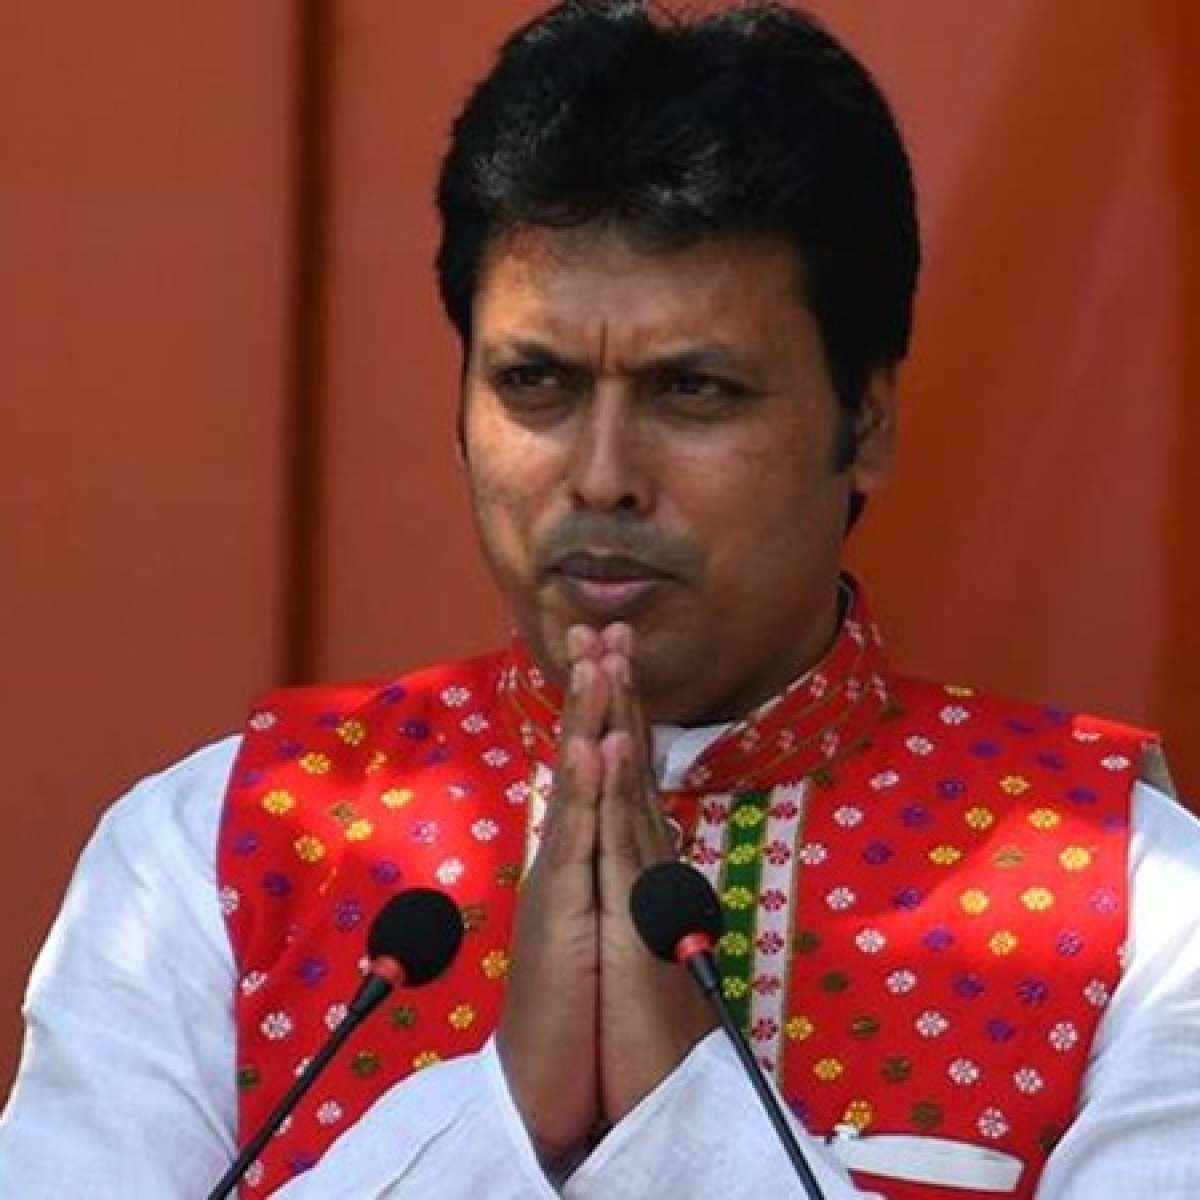 Tripura Congress leader who filed complaint against CM Biplab Kumar Deb charged with forgery